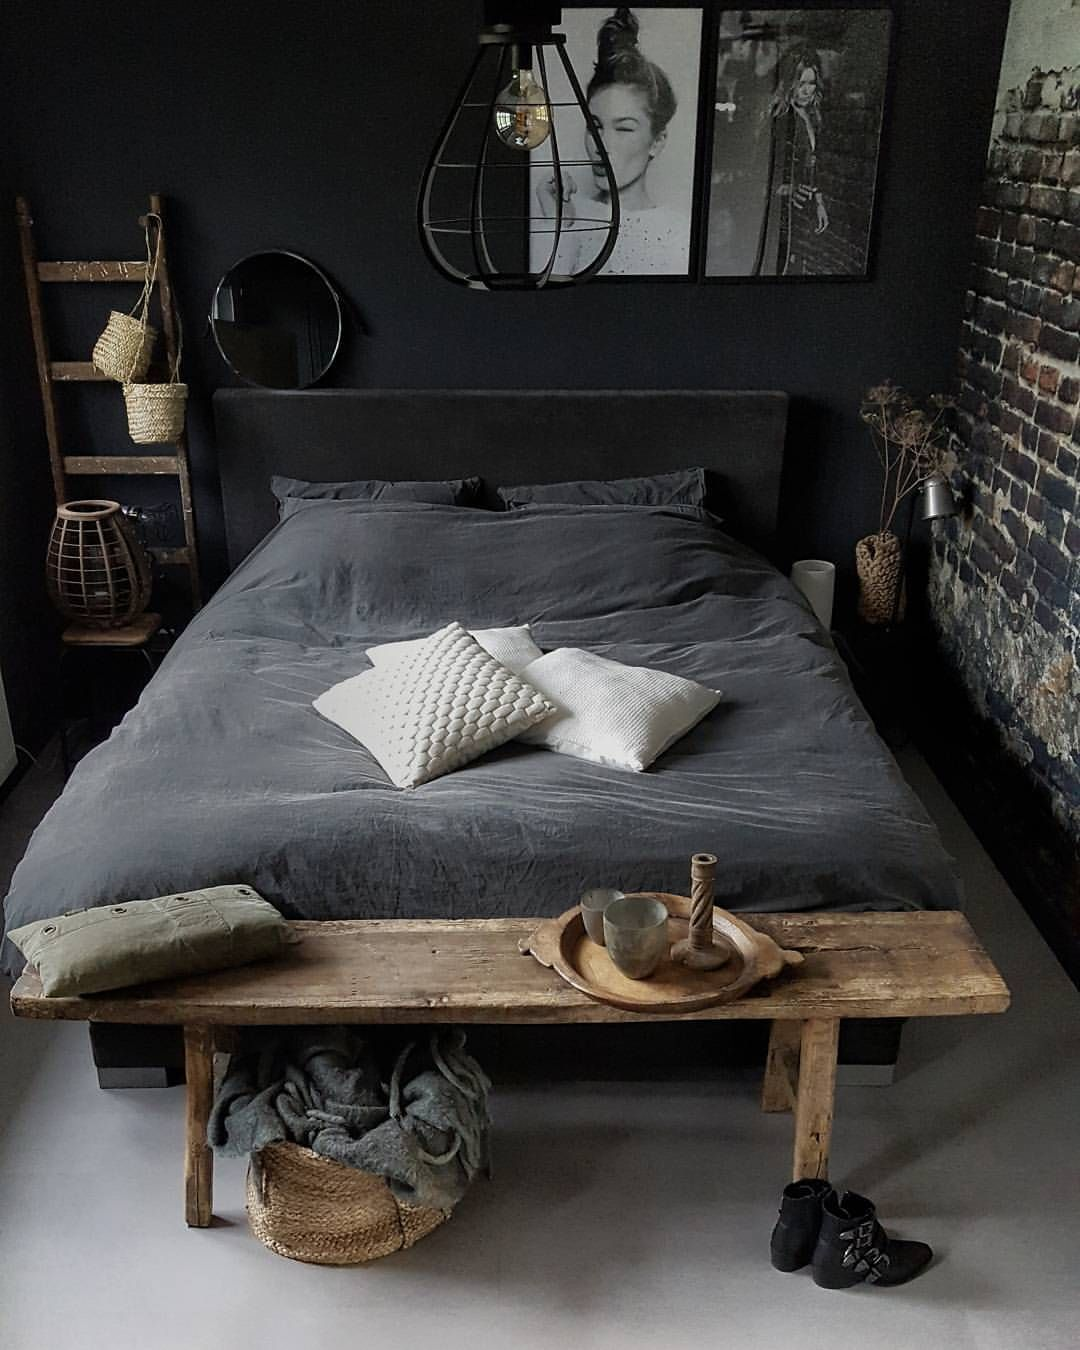 Industrial Bedroom Furniture Pin By Jeanne Le Roux On Grys Dekor In 2019 Pinterest